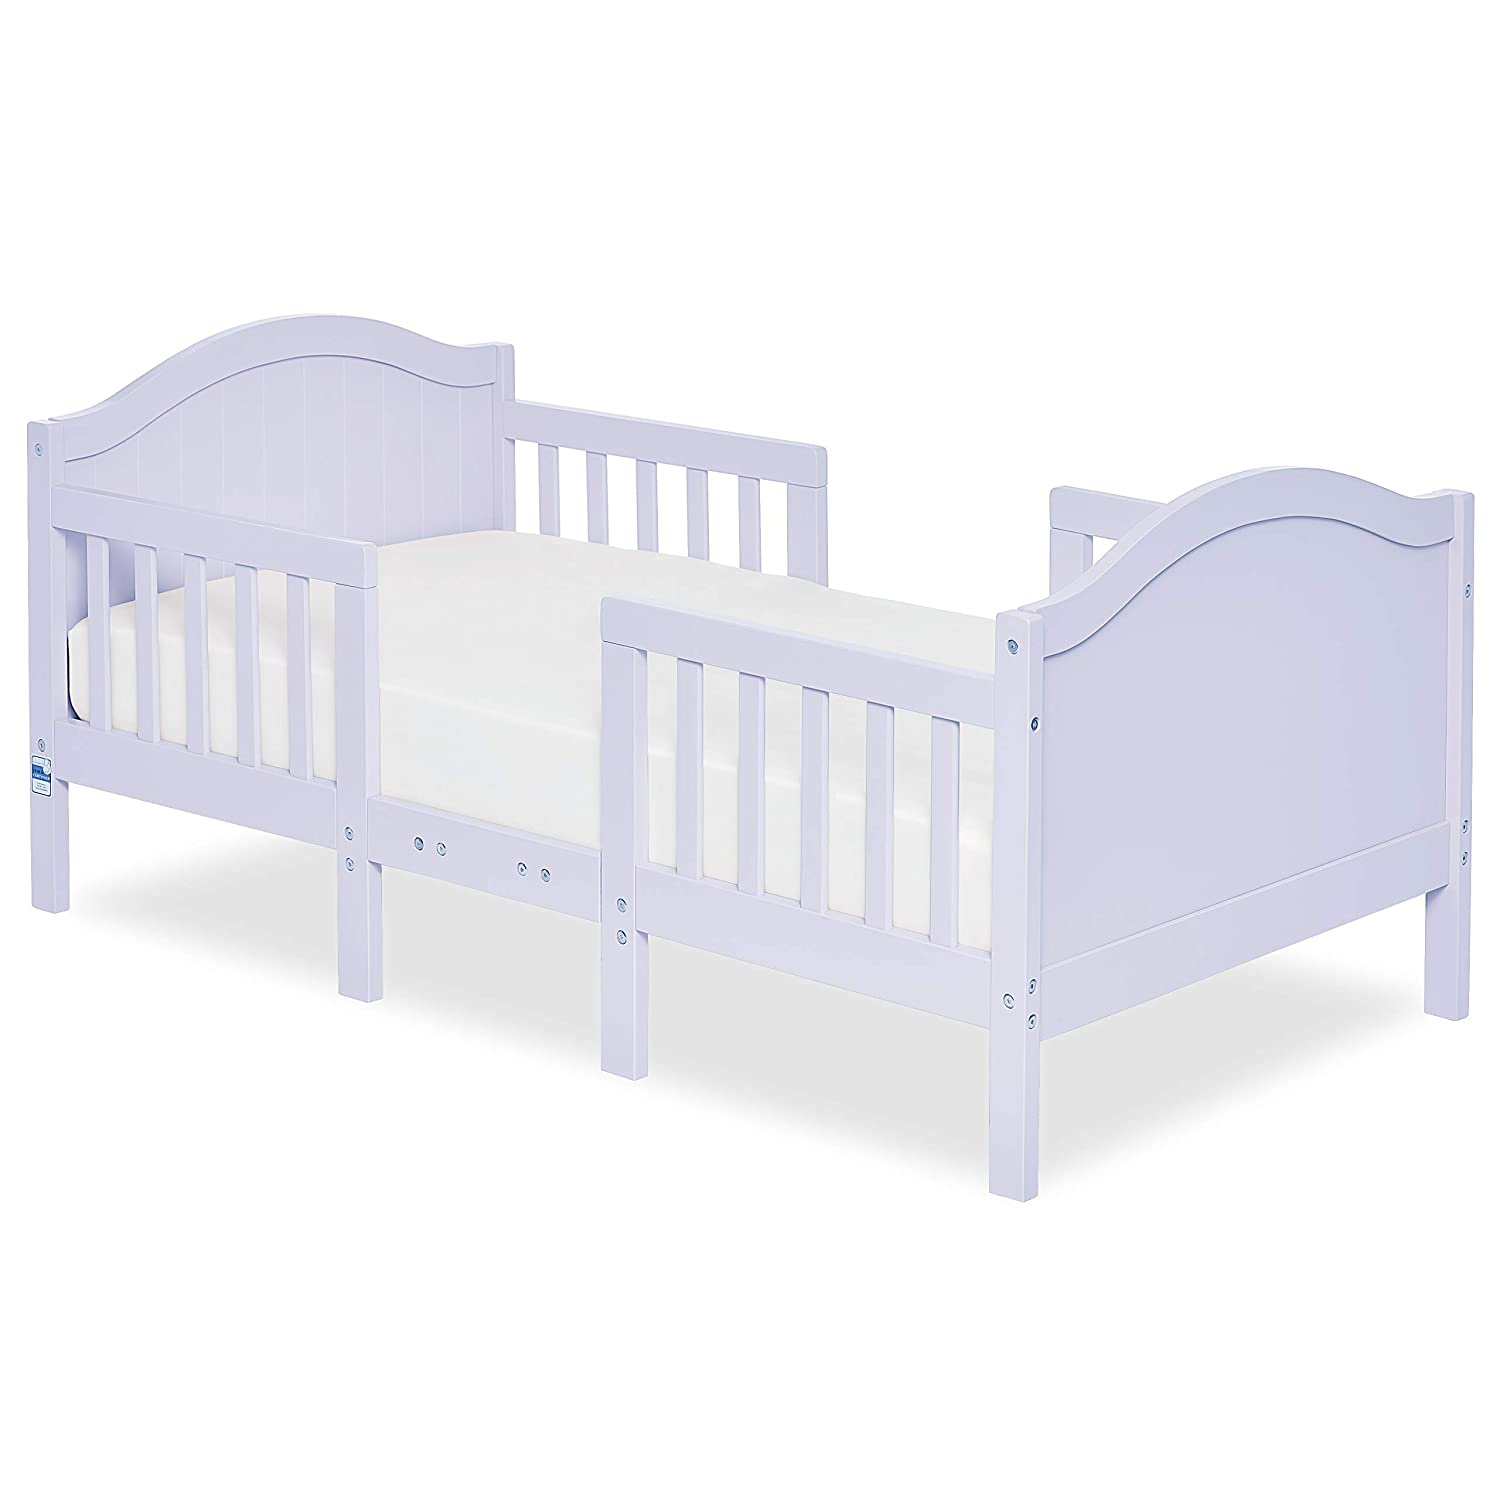 Dream On Me Portland 3 In 1 Convertible Toddler Bed, Lavender Ice